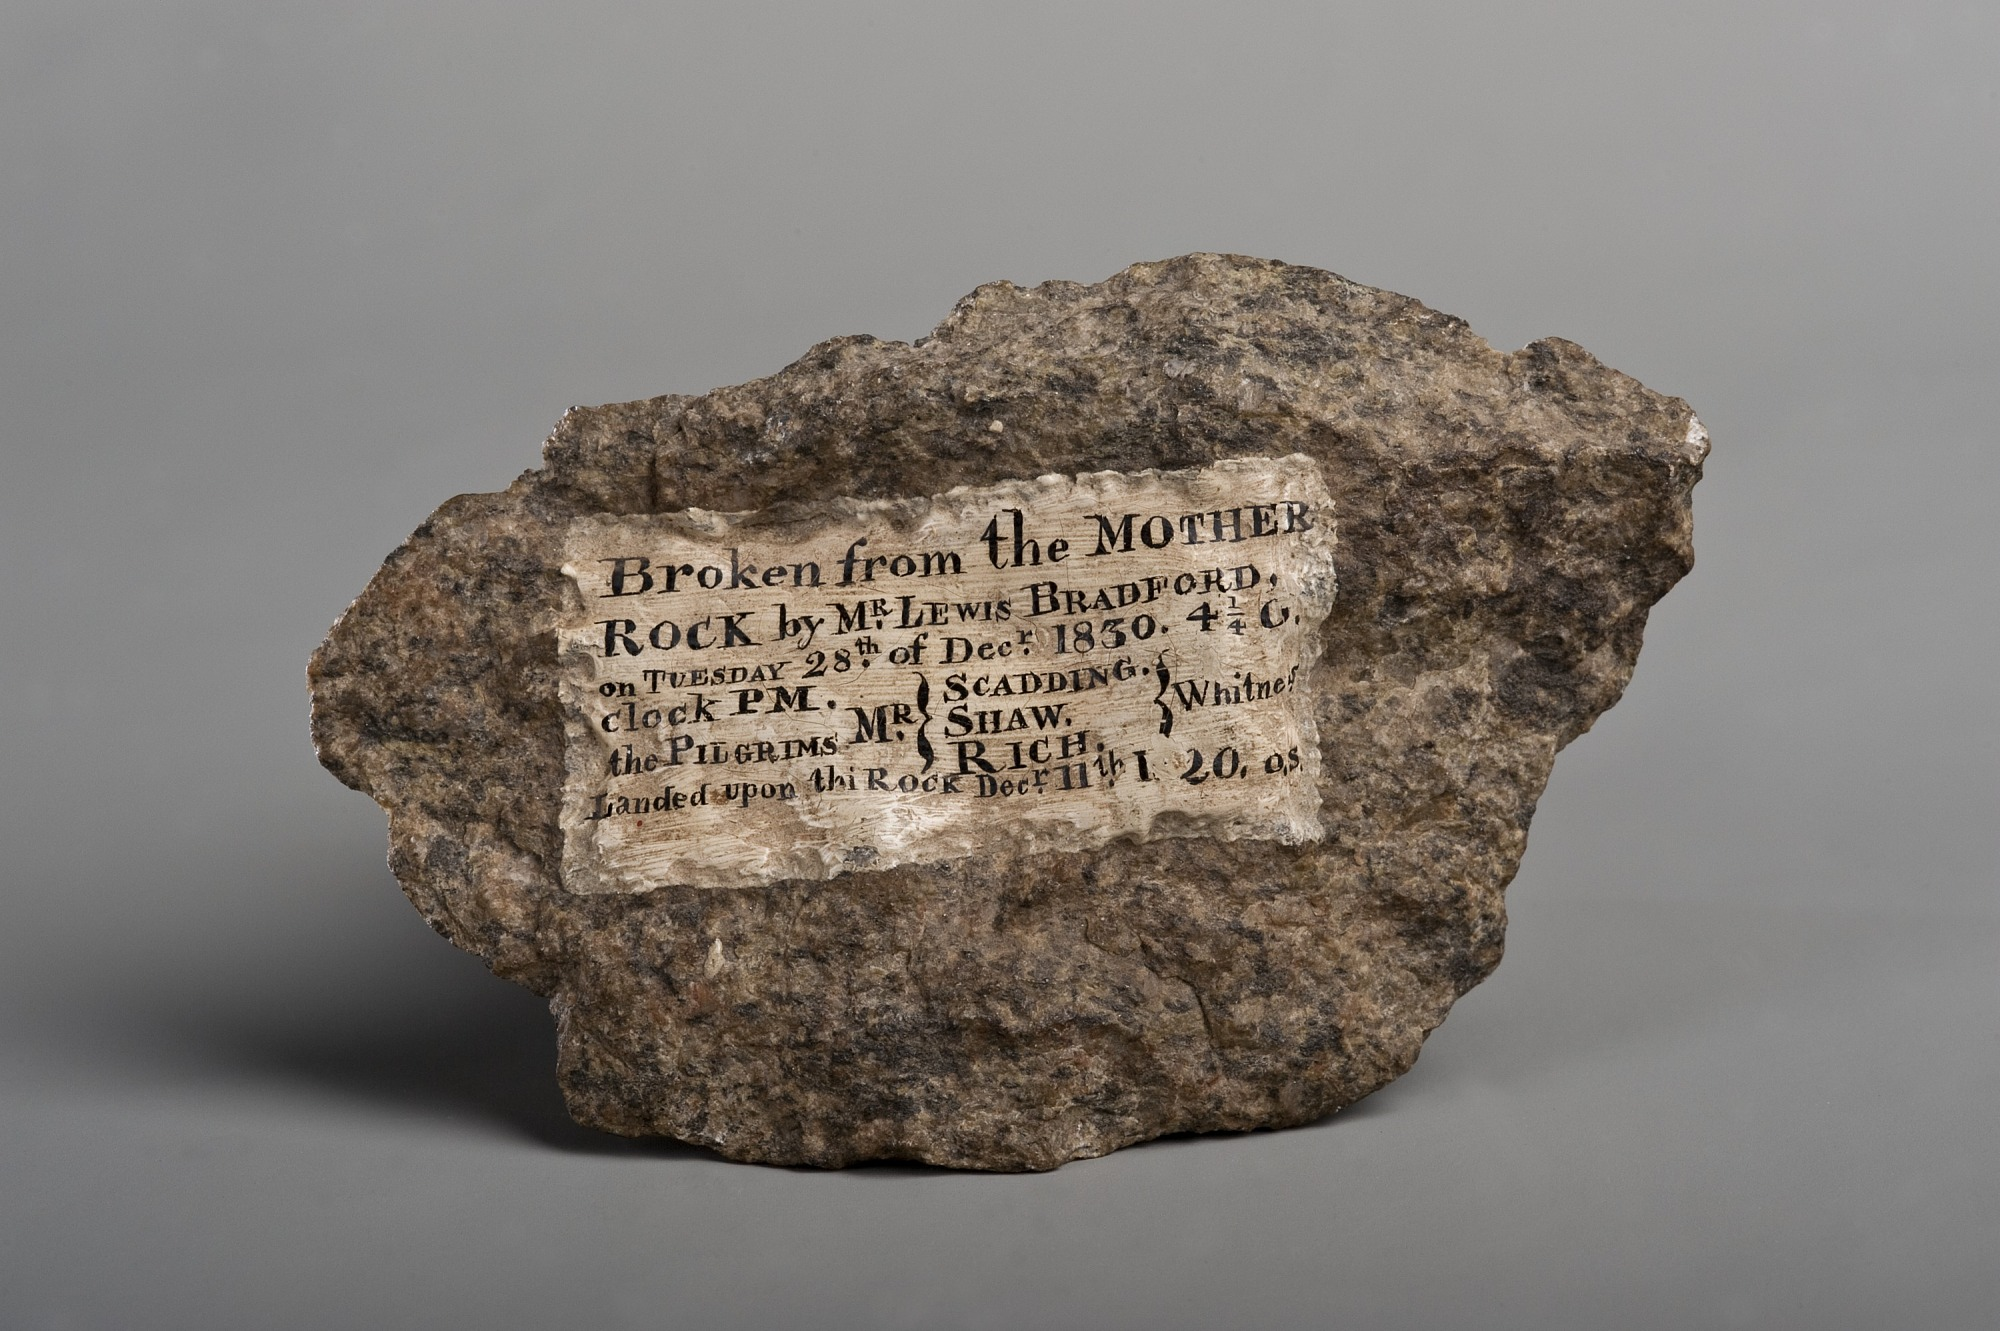 images for Plymouth Rock fragment with painted inscription, 1830